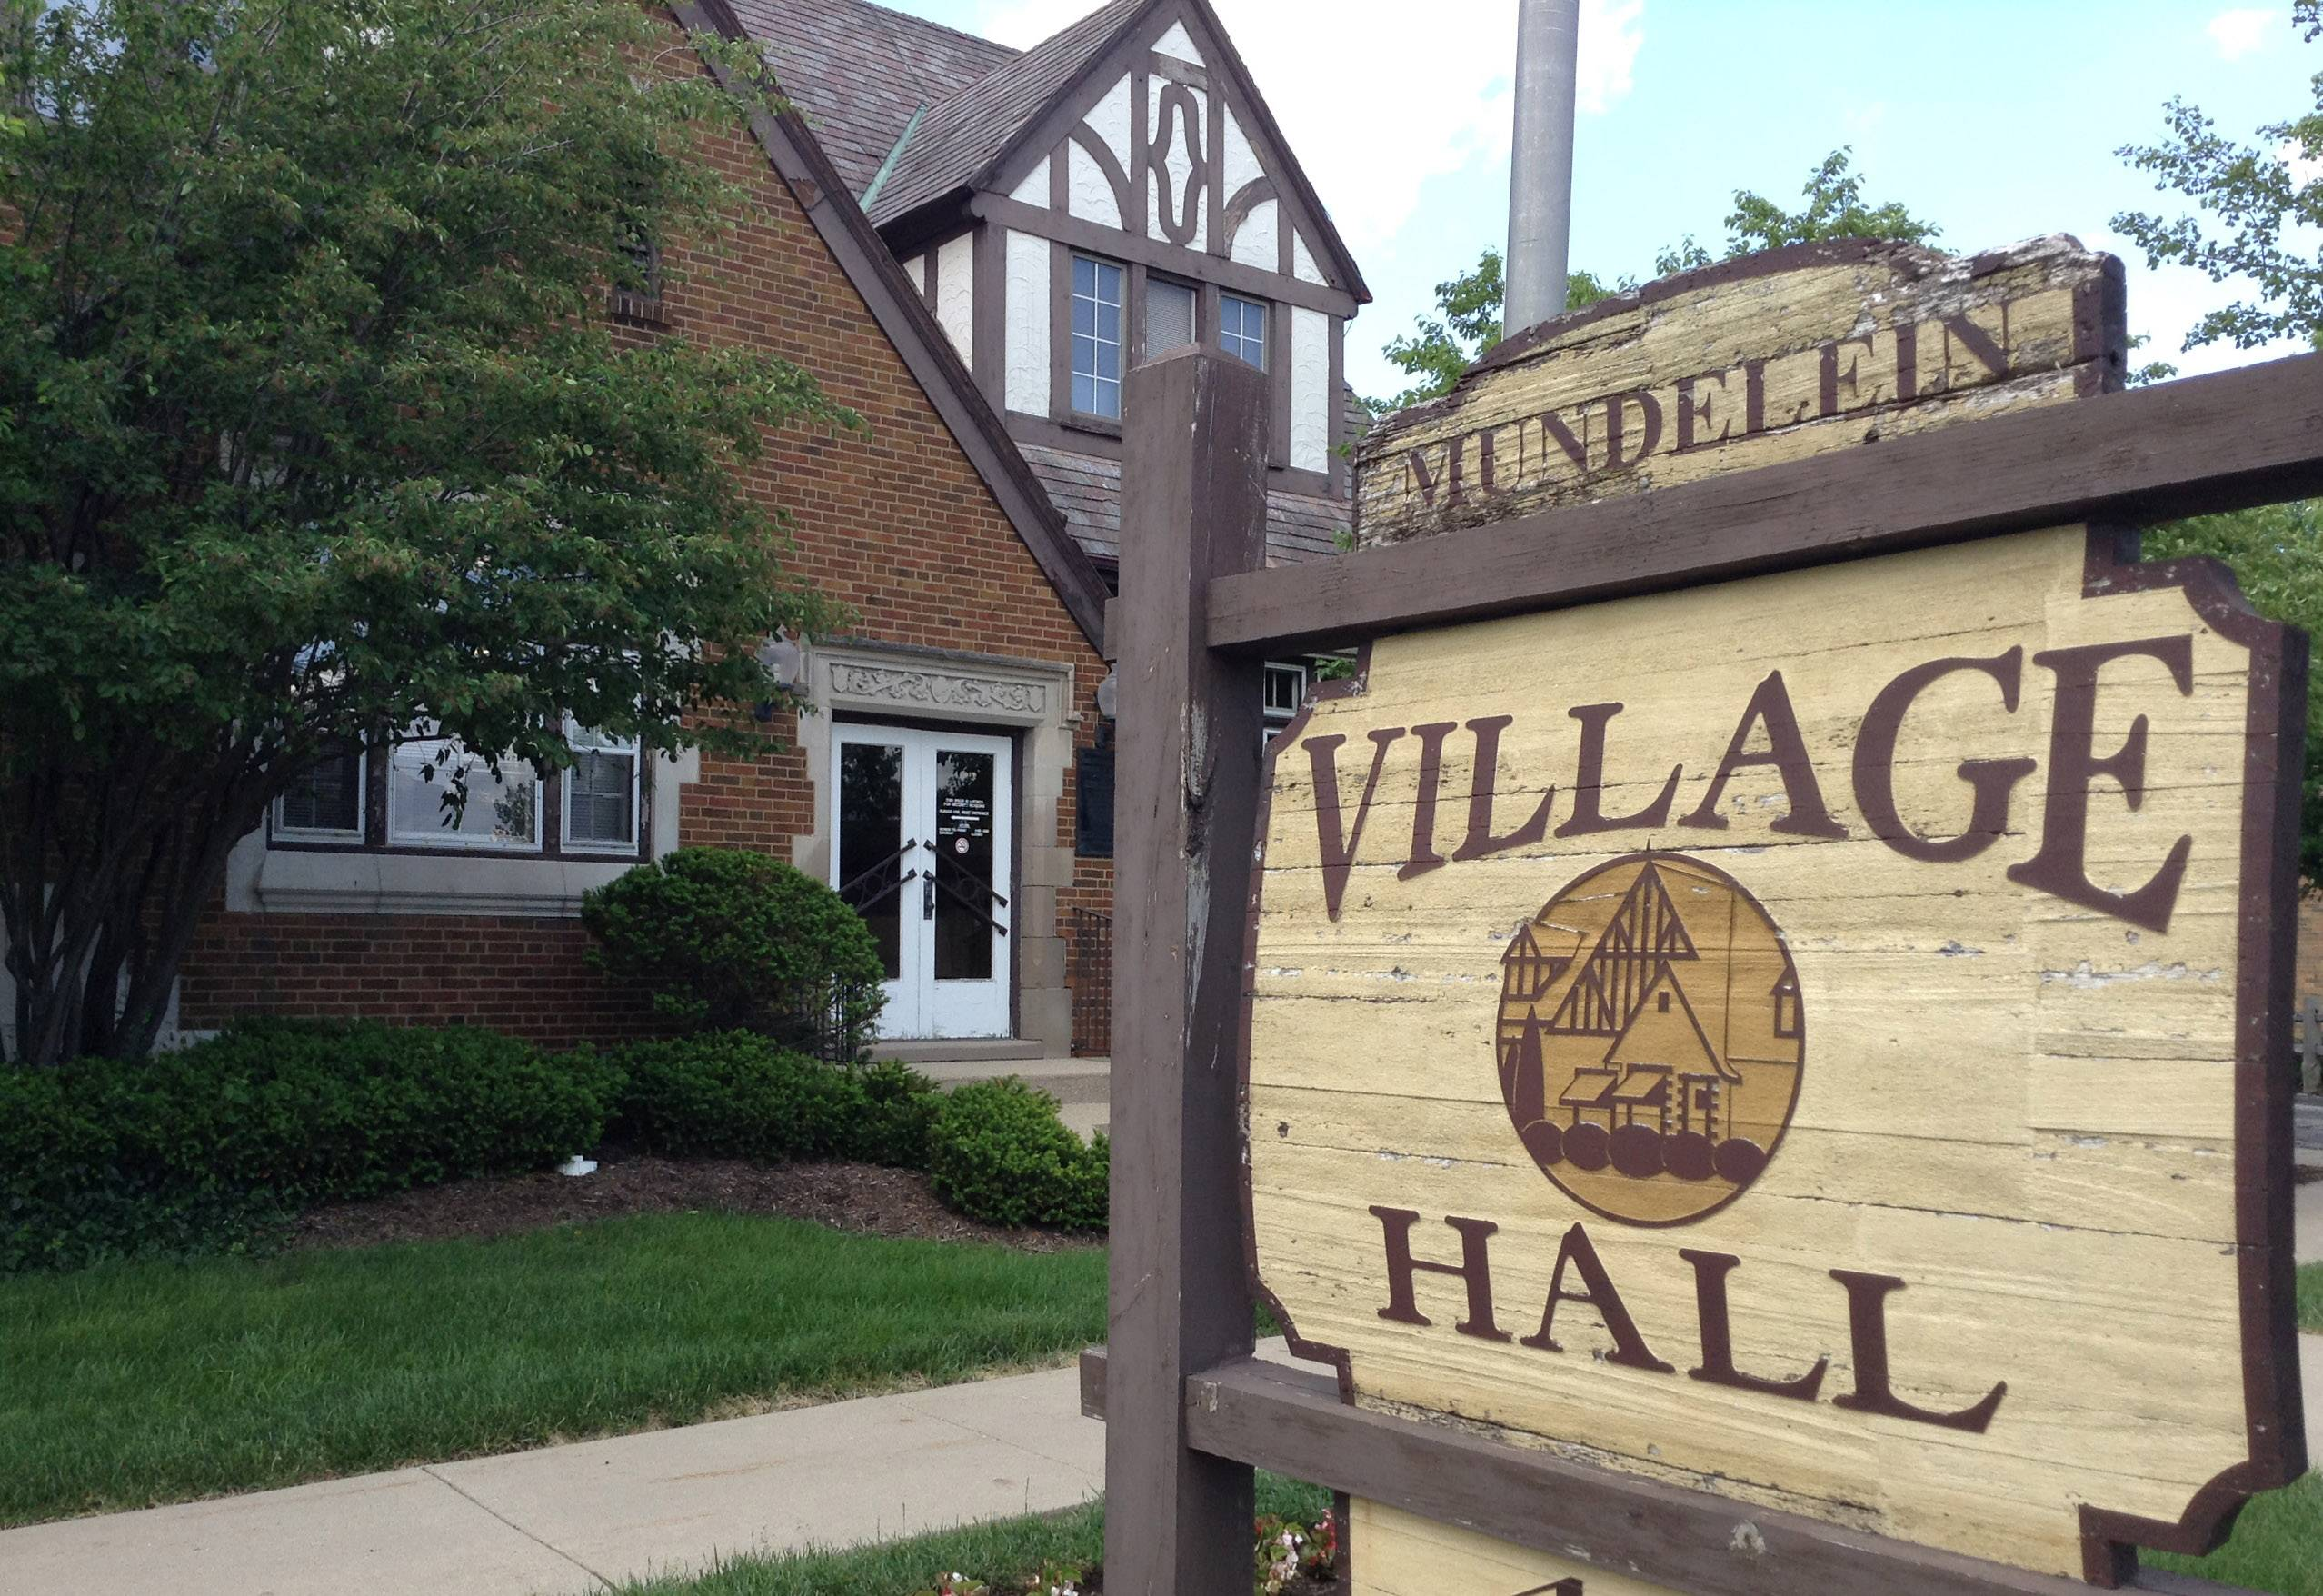 Mundelein officials will conduct municipal business for another two weeks in the current village hall, which has operated since the 1920s.